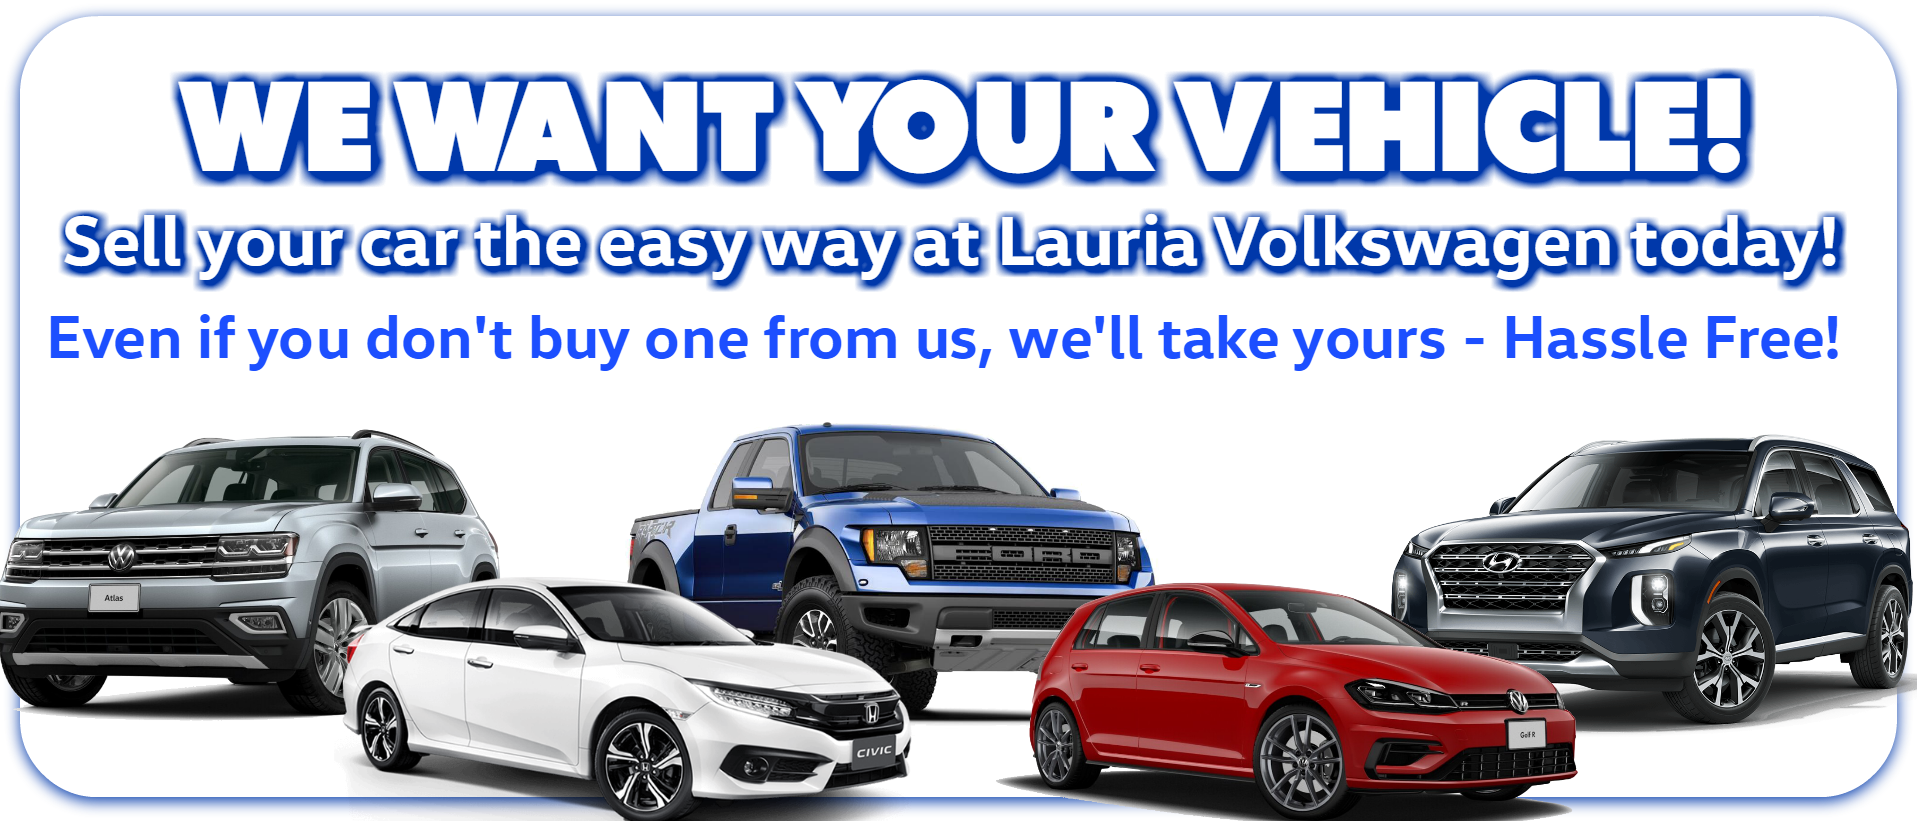 Sell us your vehicle at Lauria Volkswagen